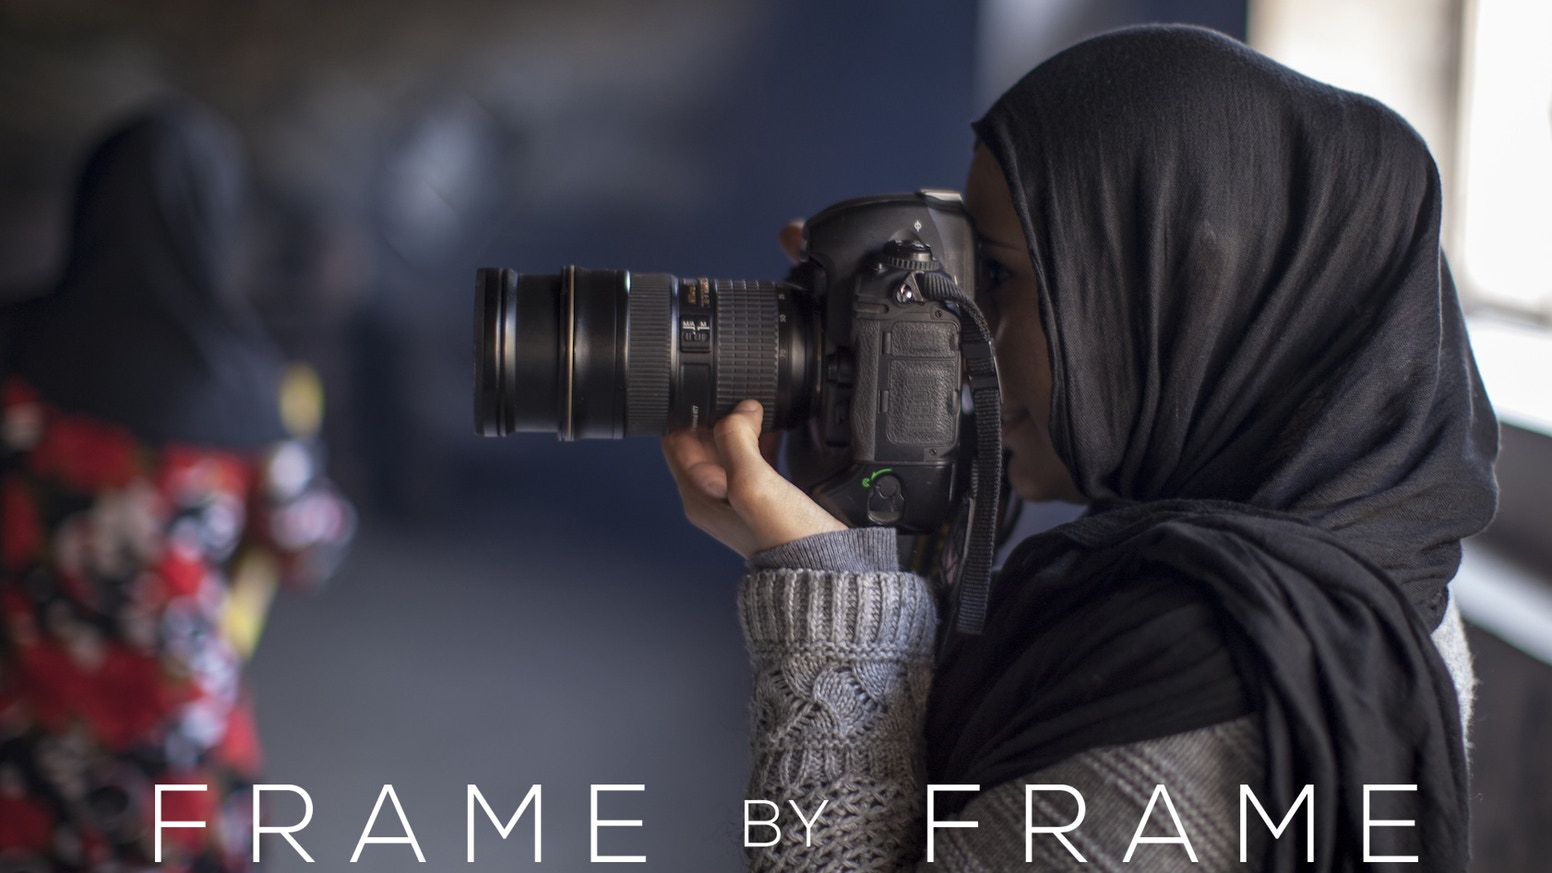 Frame by frame by alexandria bombach mo scarpelli kickstarter frame by frame a documentary exploring afghanistans recent revolution of photography through four local photojournalists jeuxipadfo Image collections